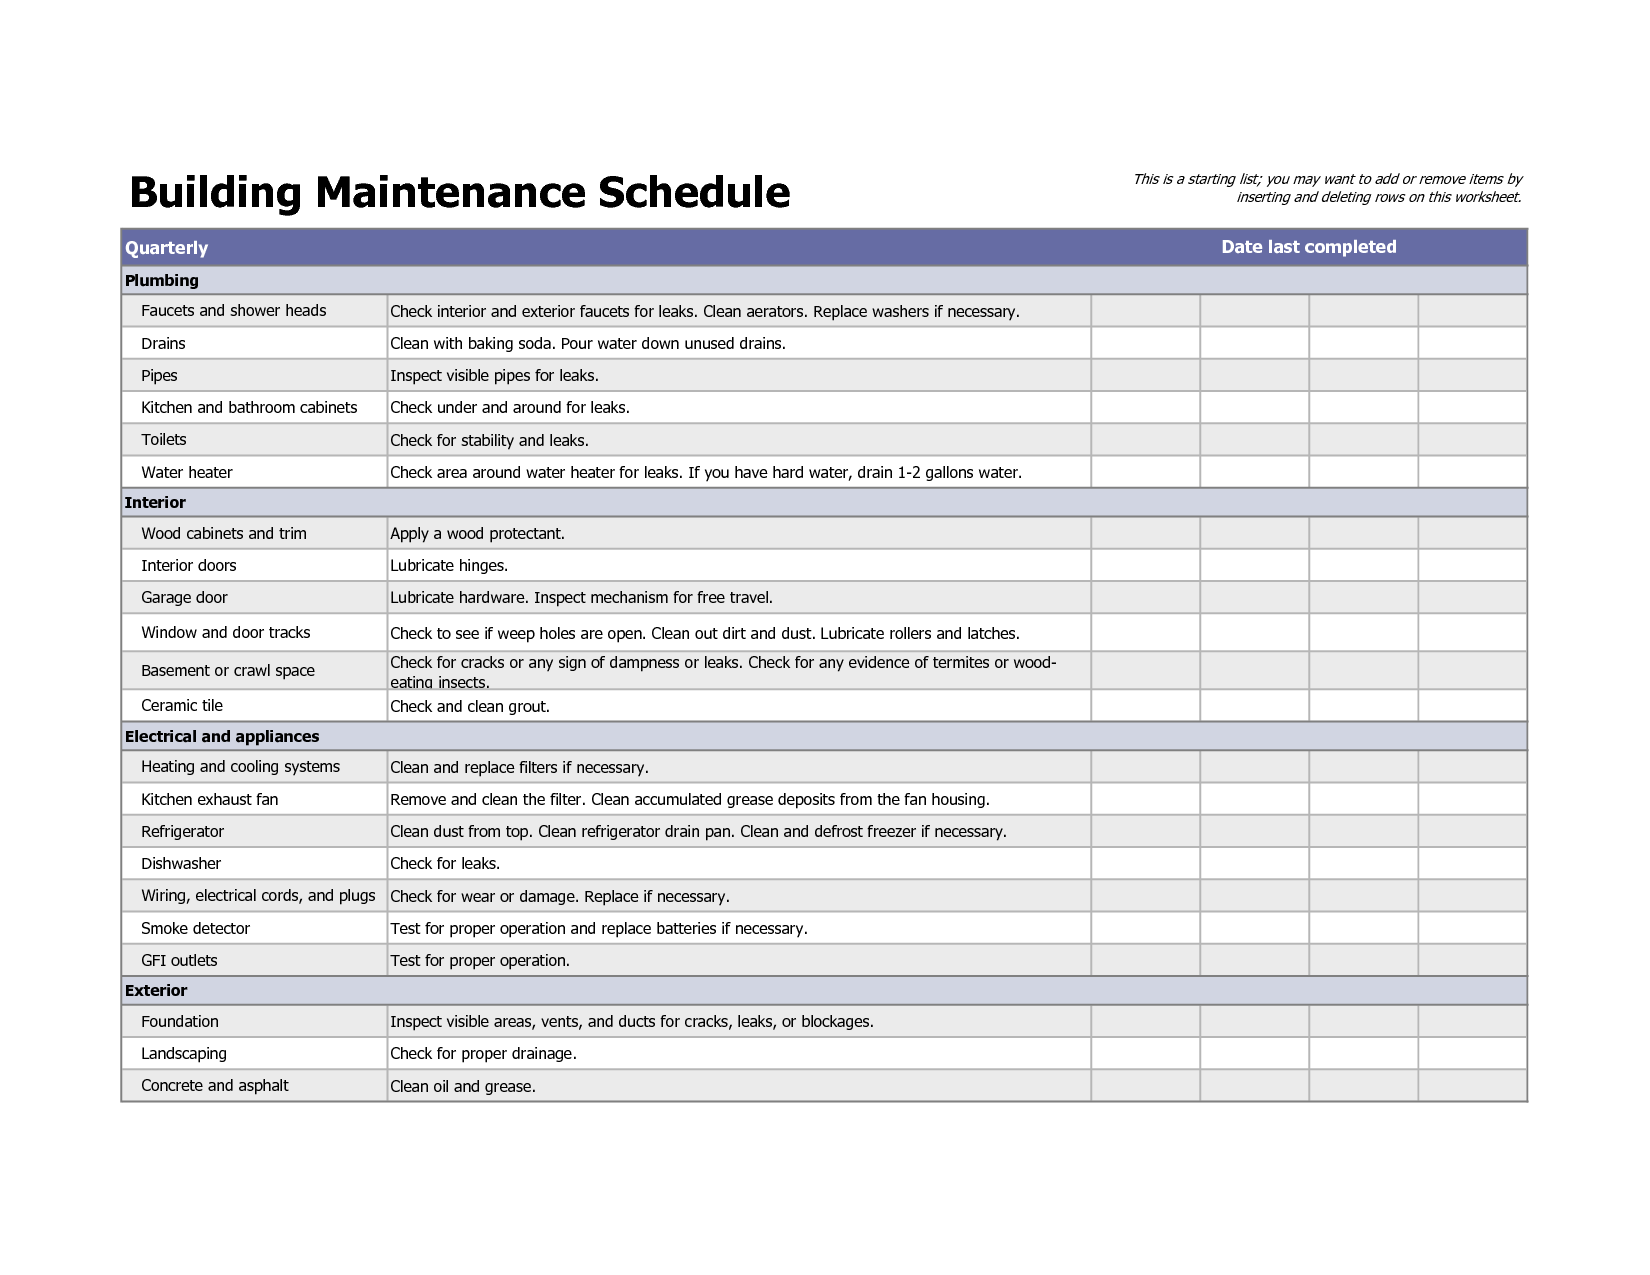 Building Maintenance Schedule Excel Template | maintenence